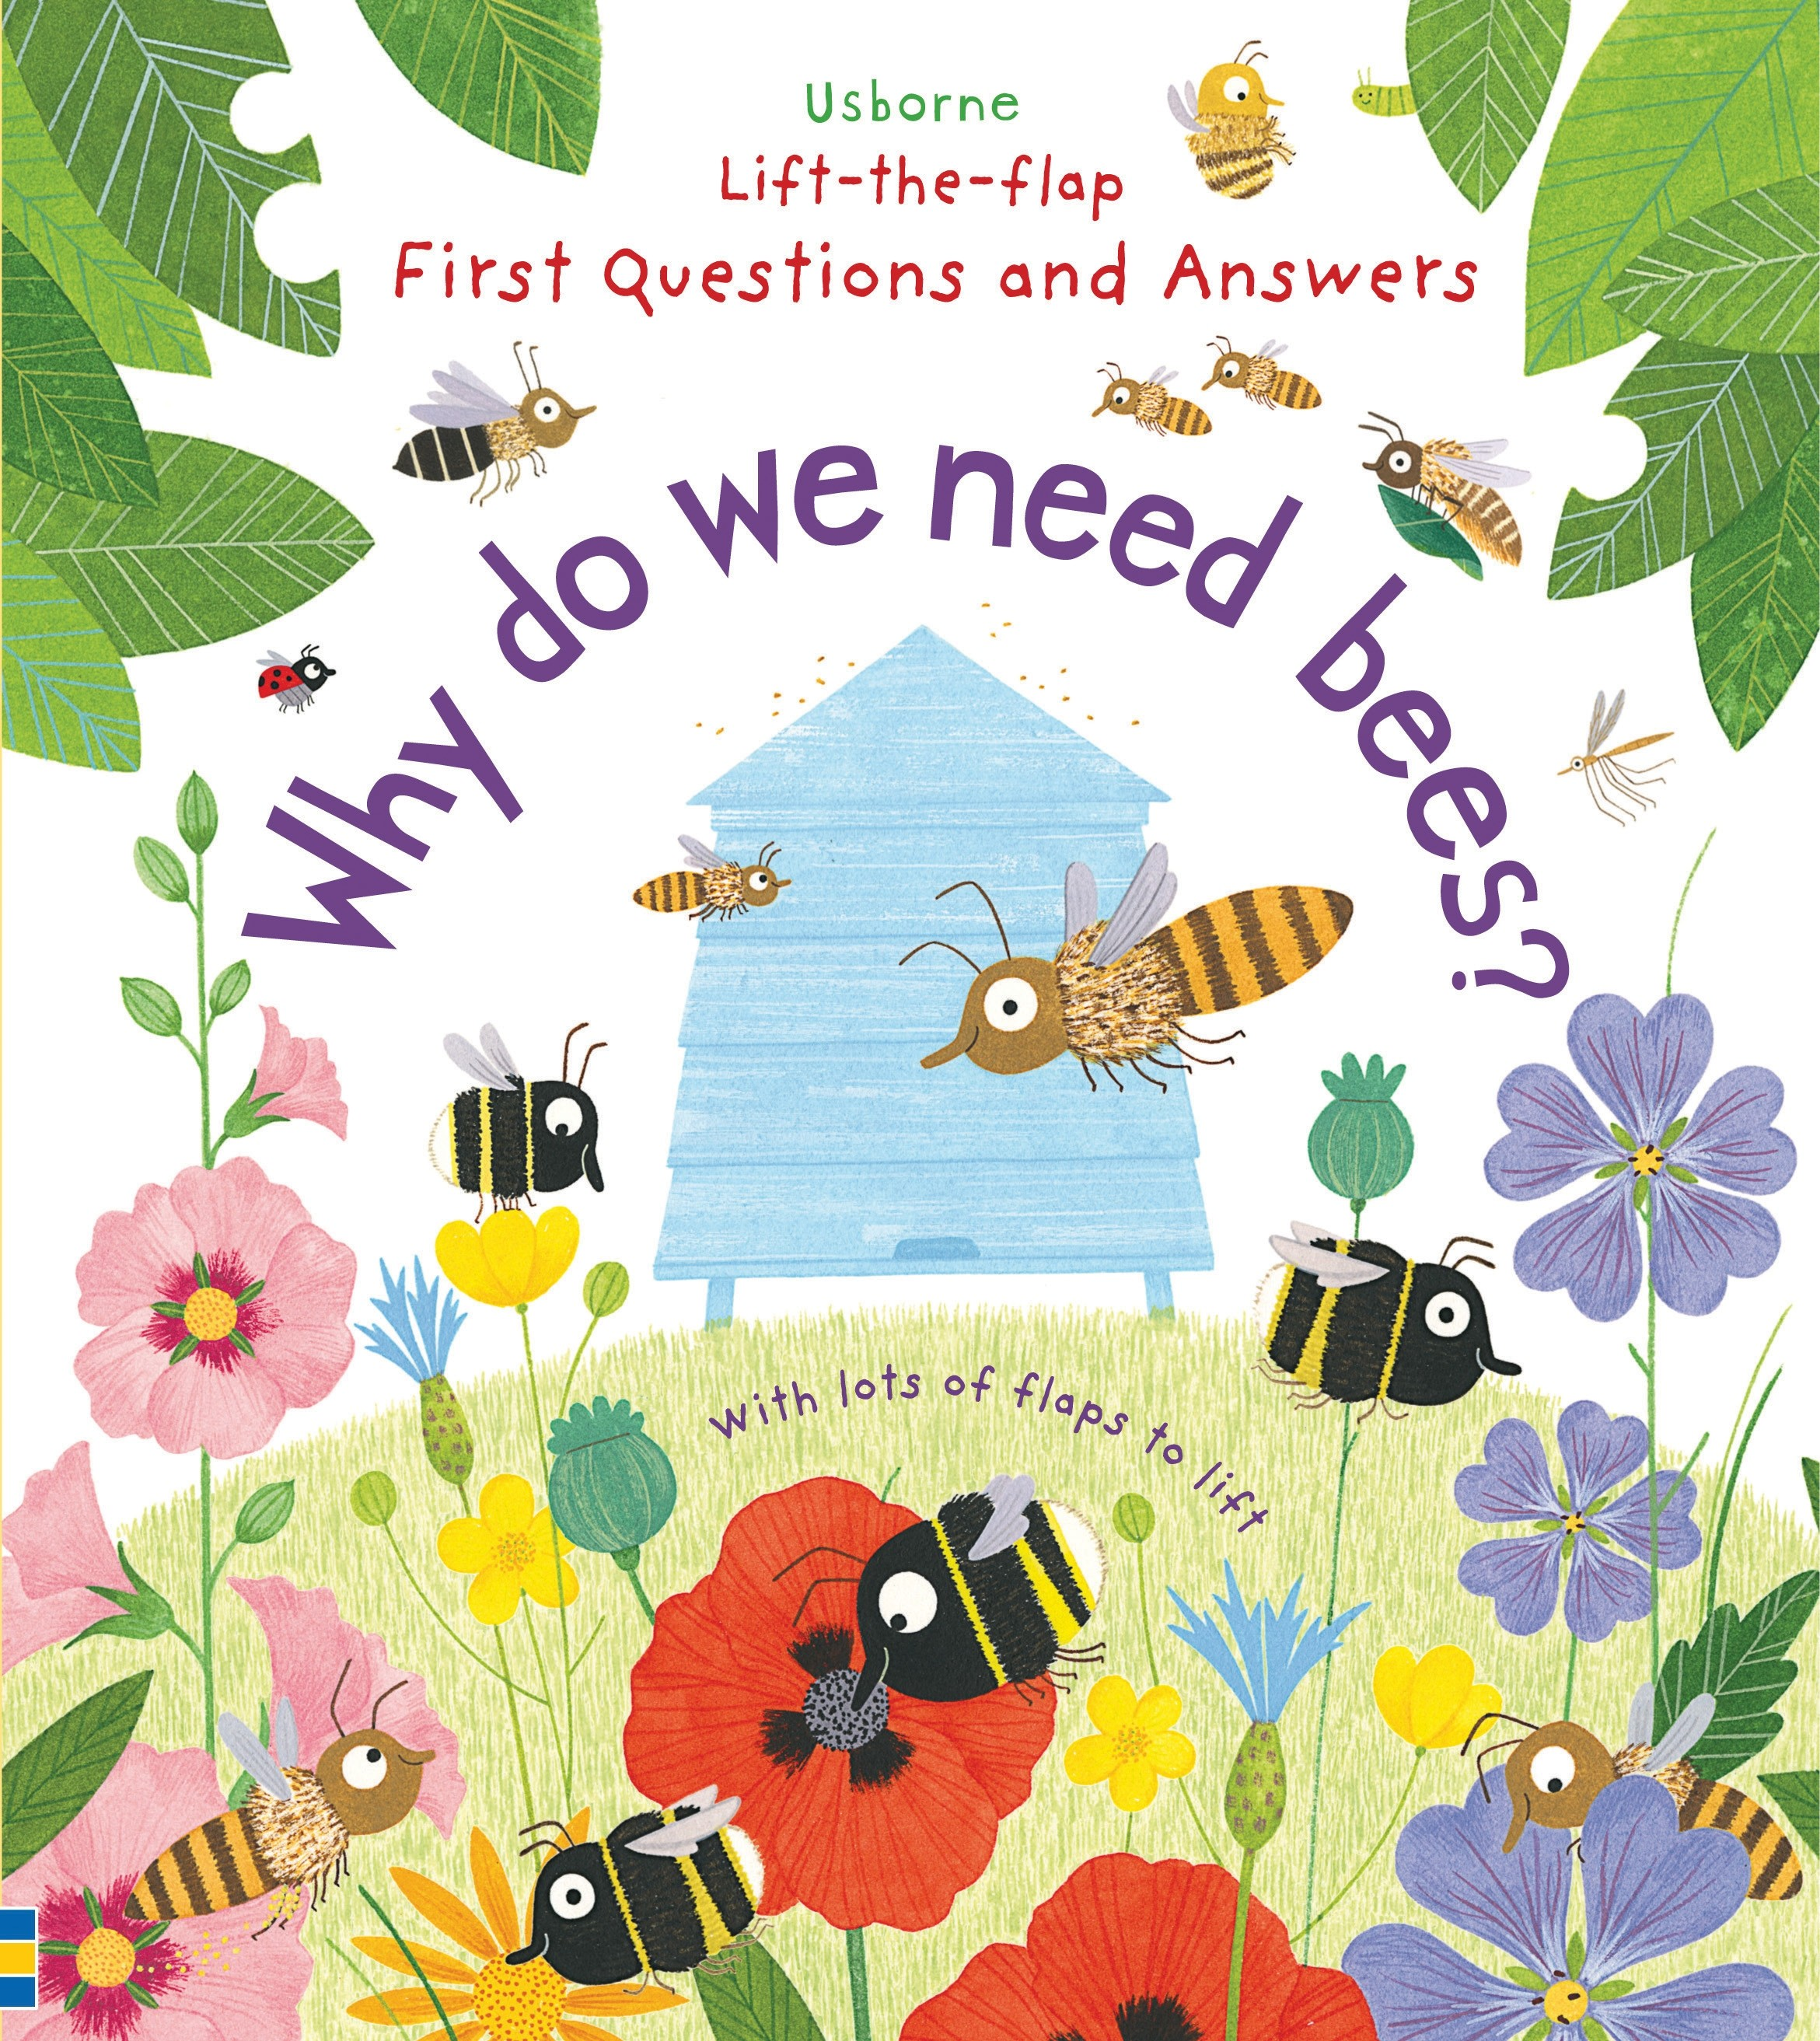 Why do we need bees? Lift-the-flap Book